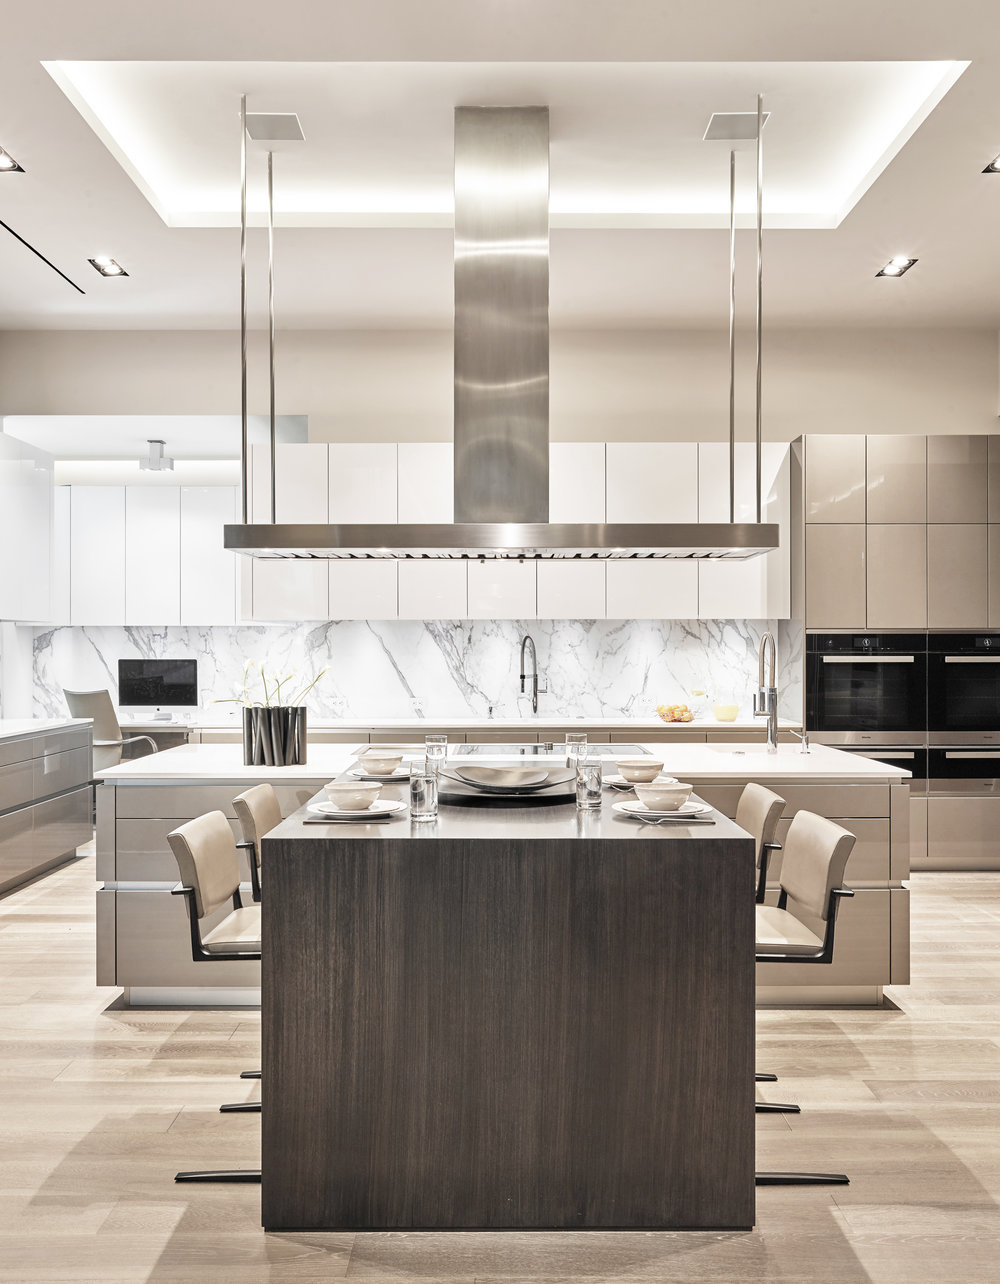 desat_berman_kitchen-a-vertical.JPG